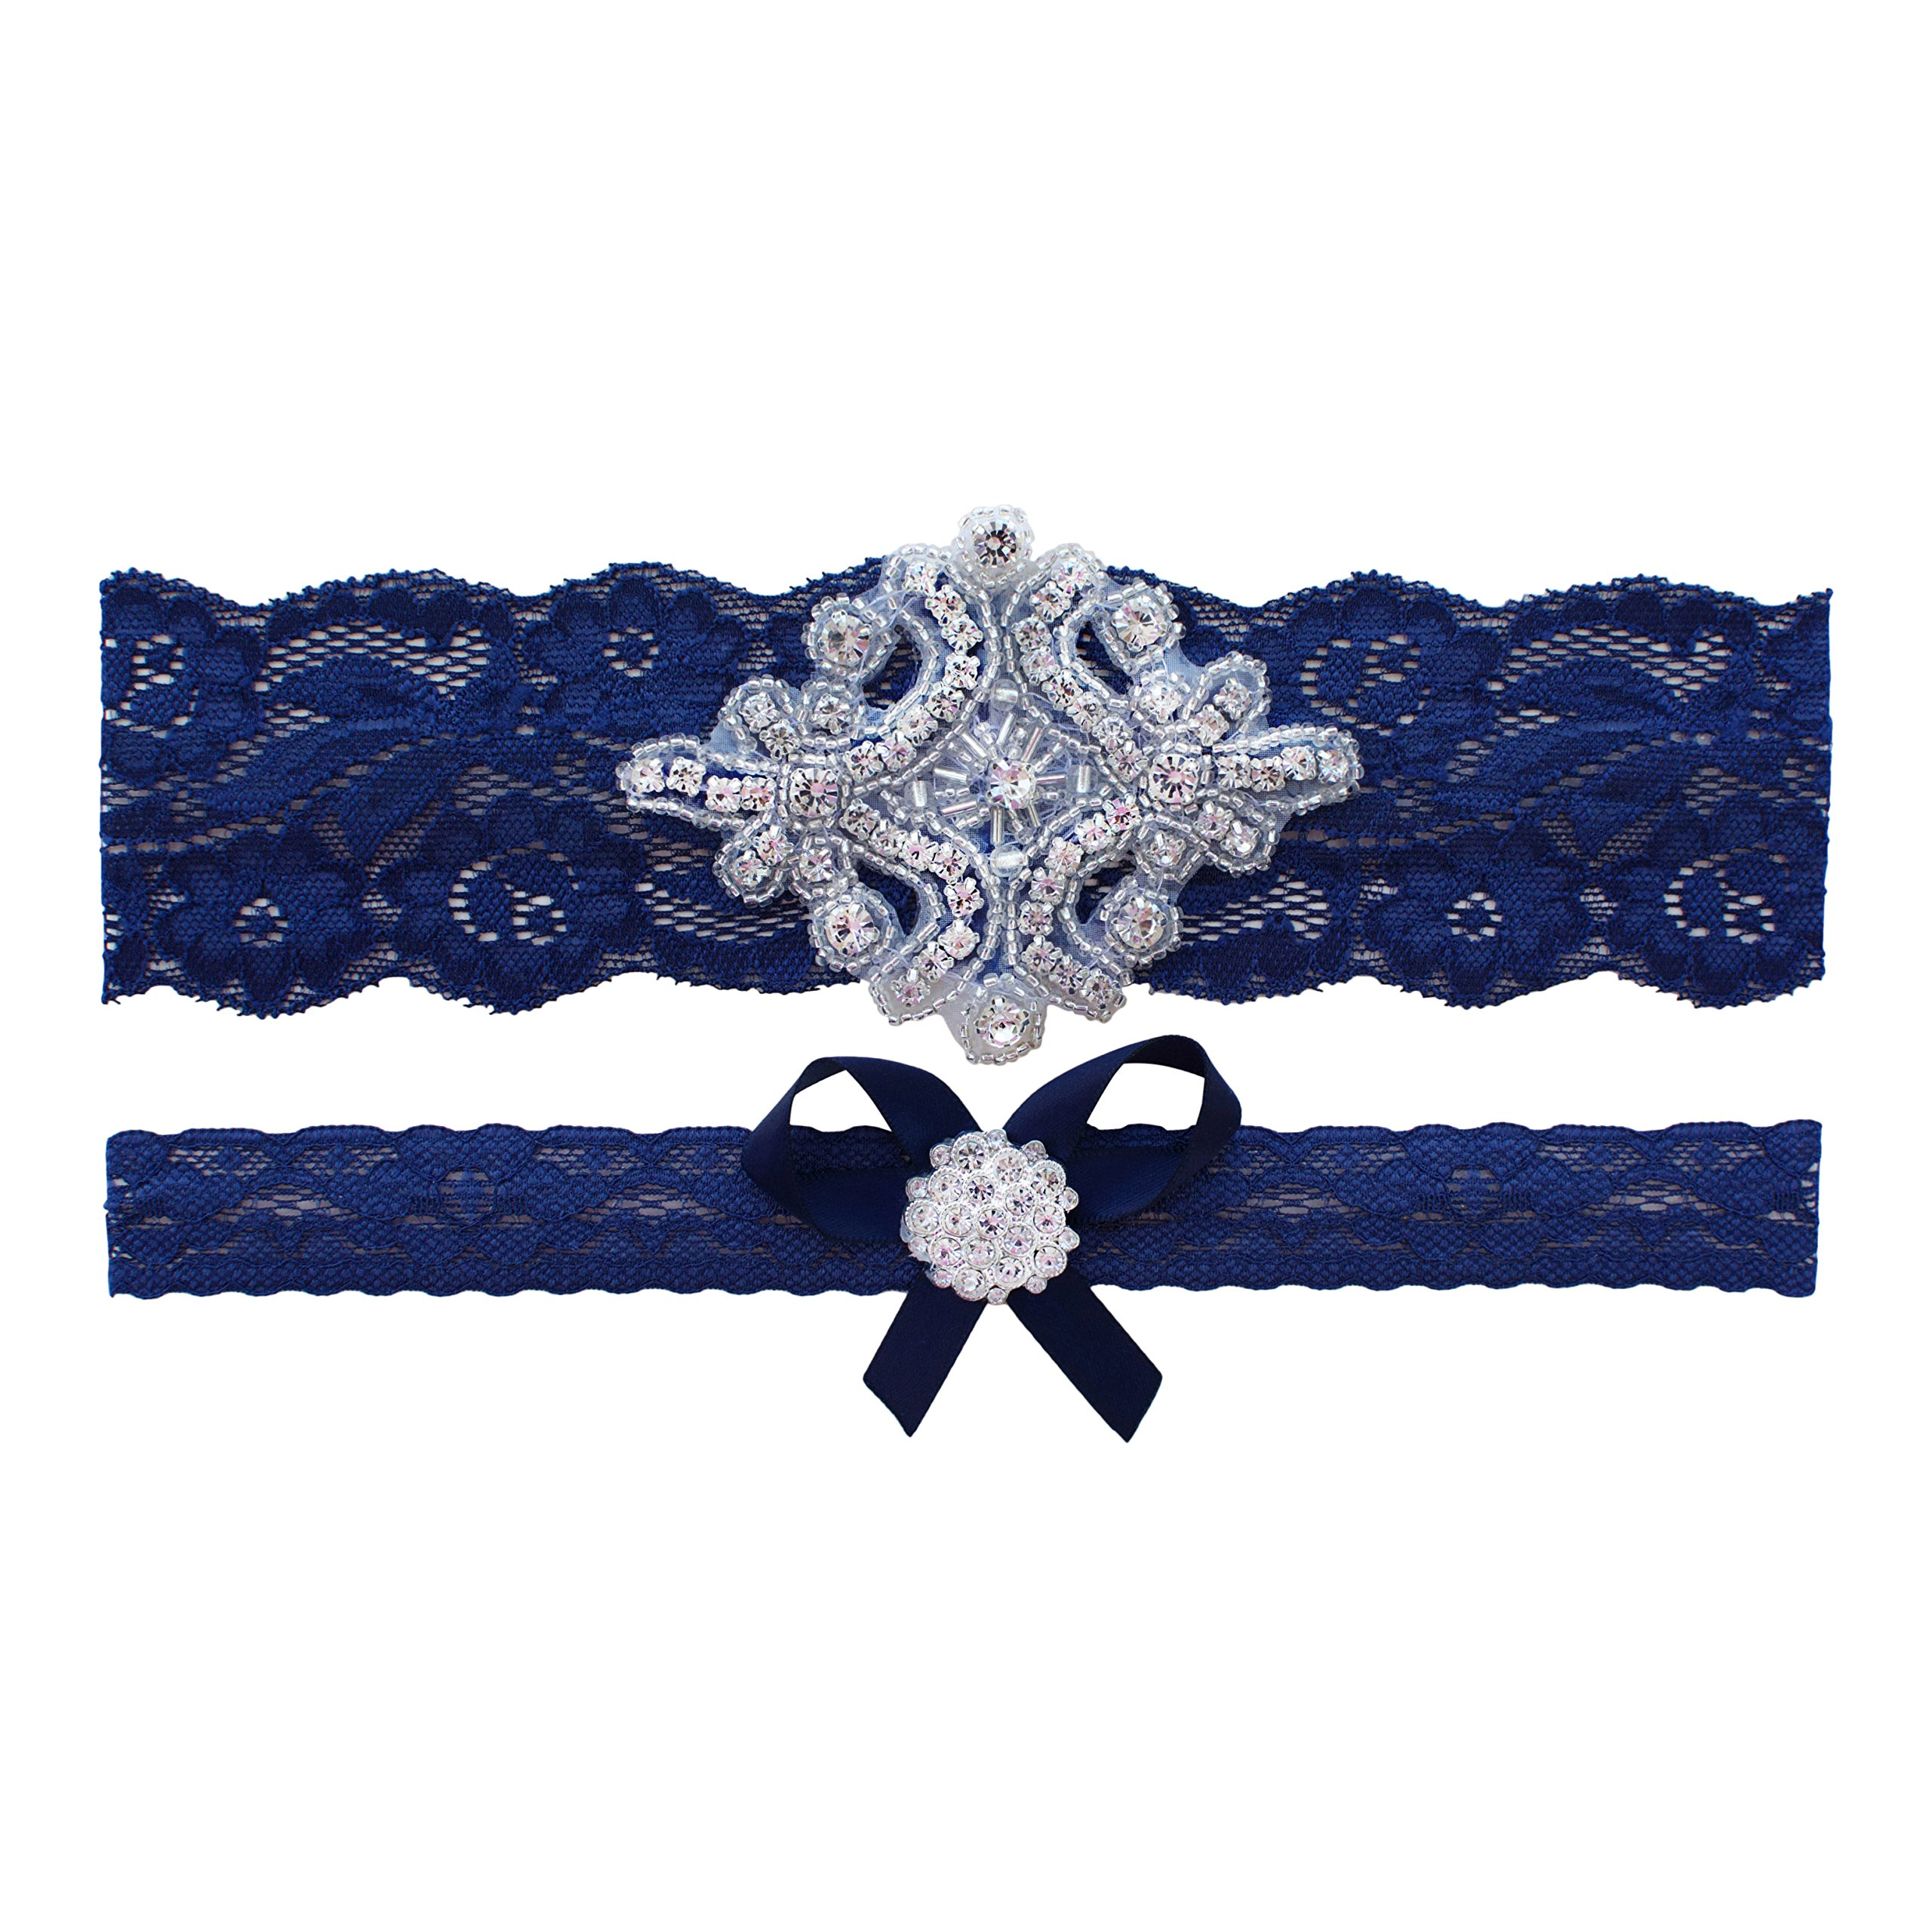 Navy Blue Wedding Garter | Garters for Brides | (Navy Blue, X-Large (22'' - 23''))